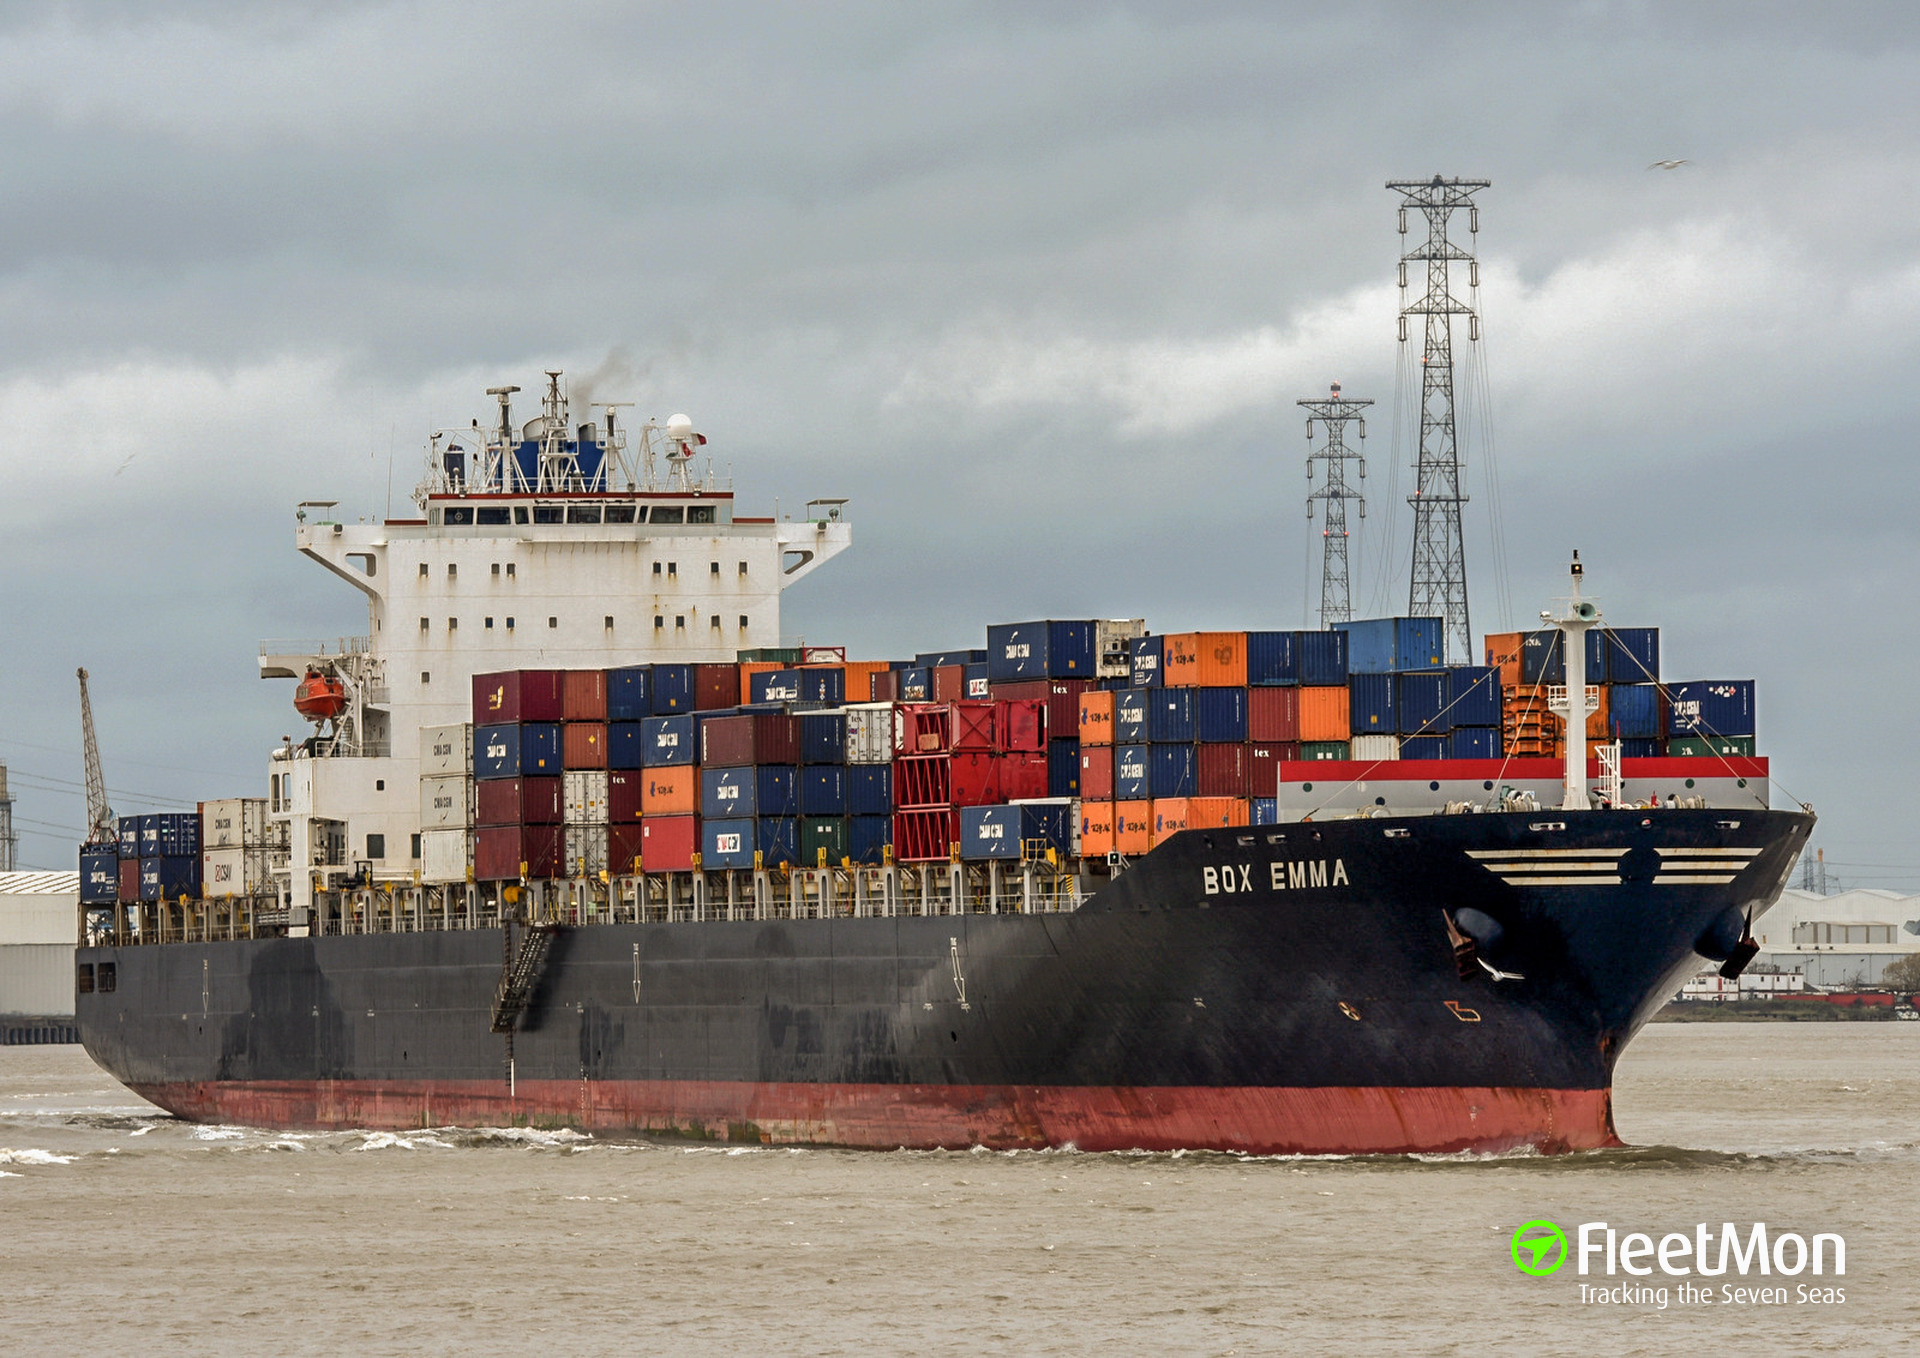 Container ship Box Emma troubled in western Malacca Strait